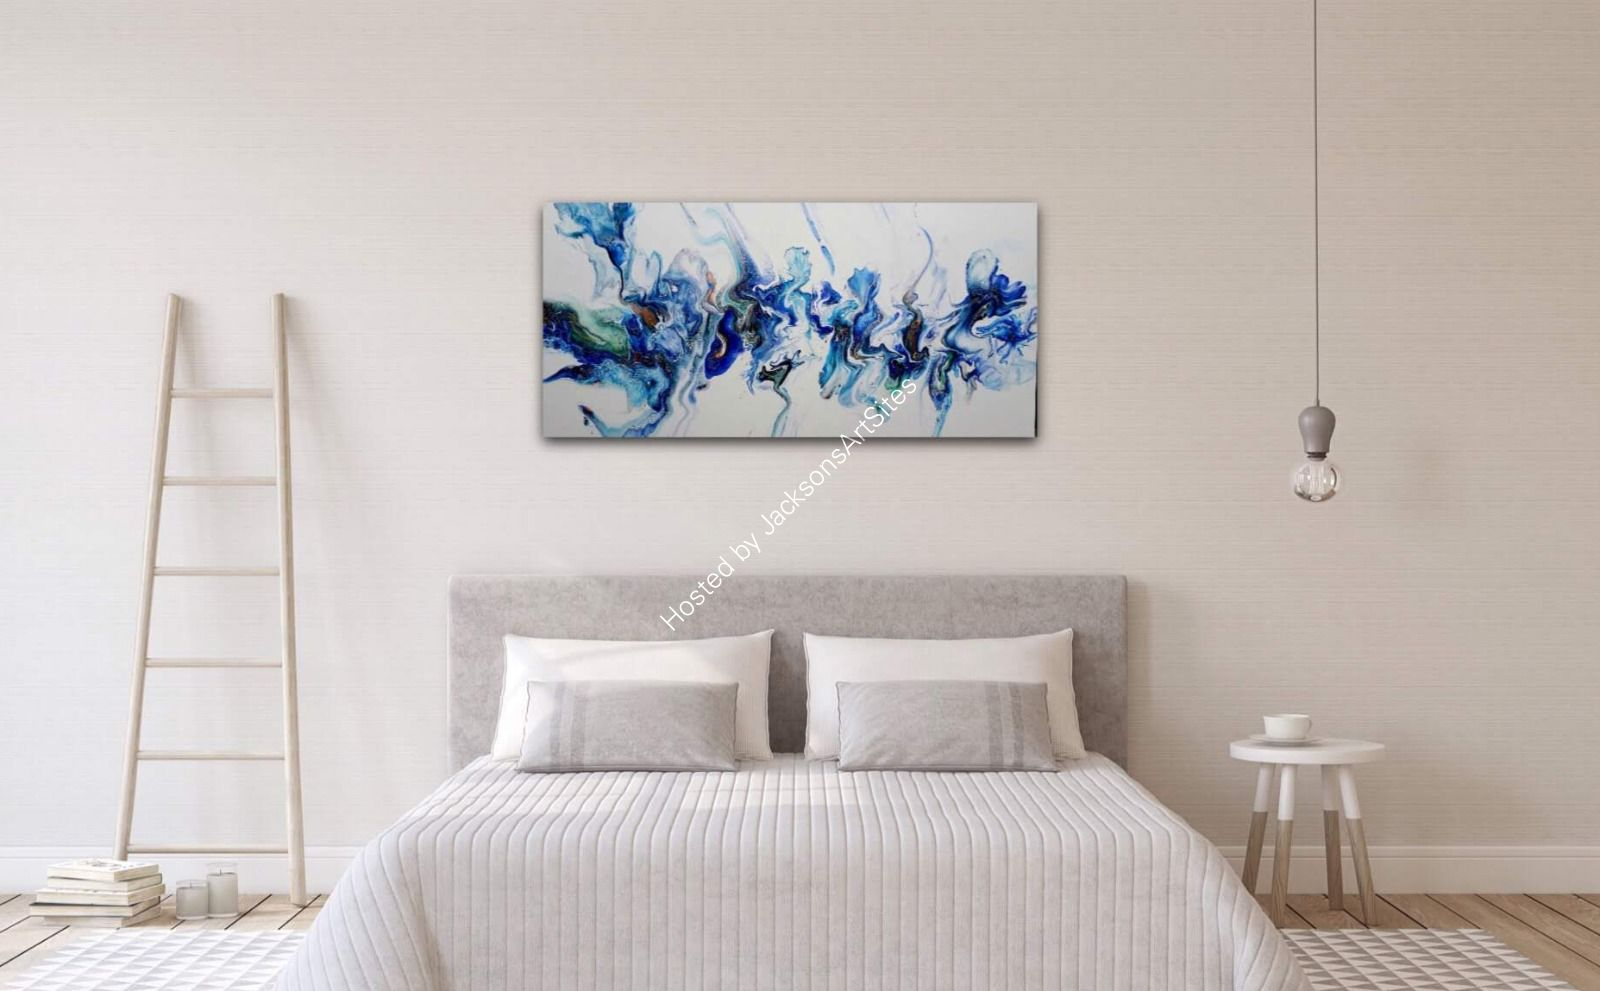 Out of The Blue on wall